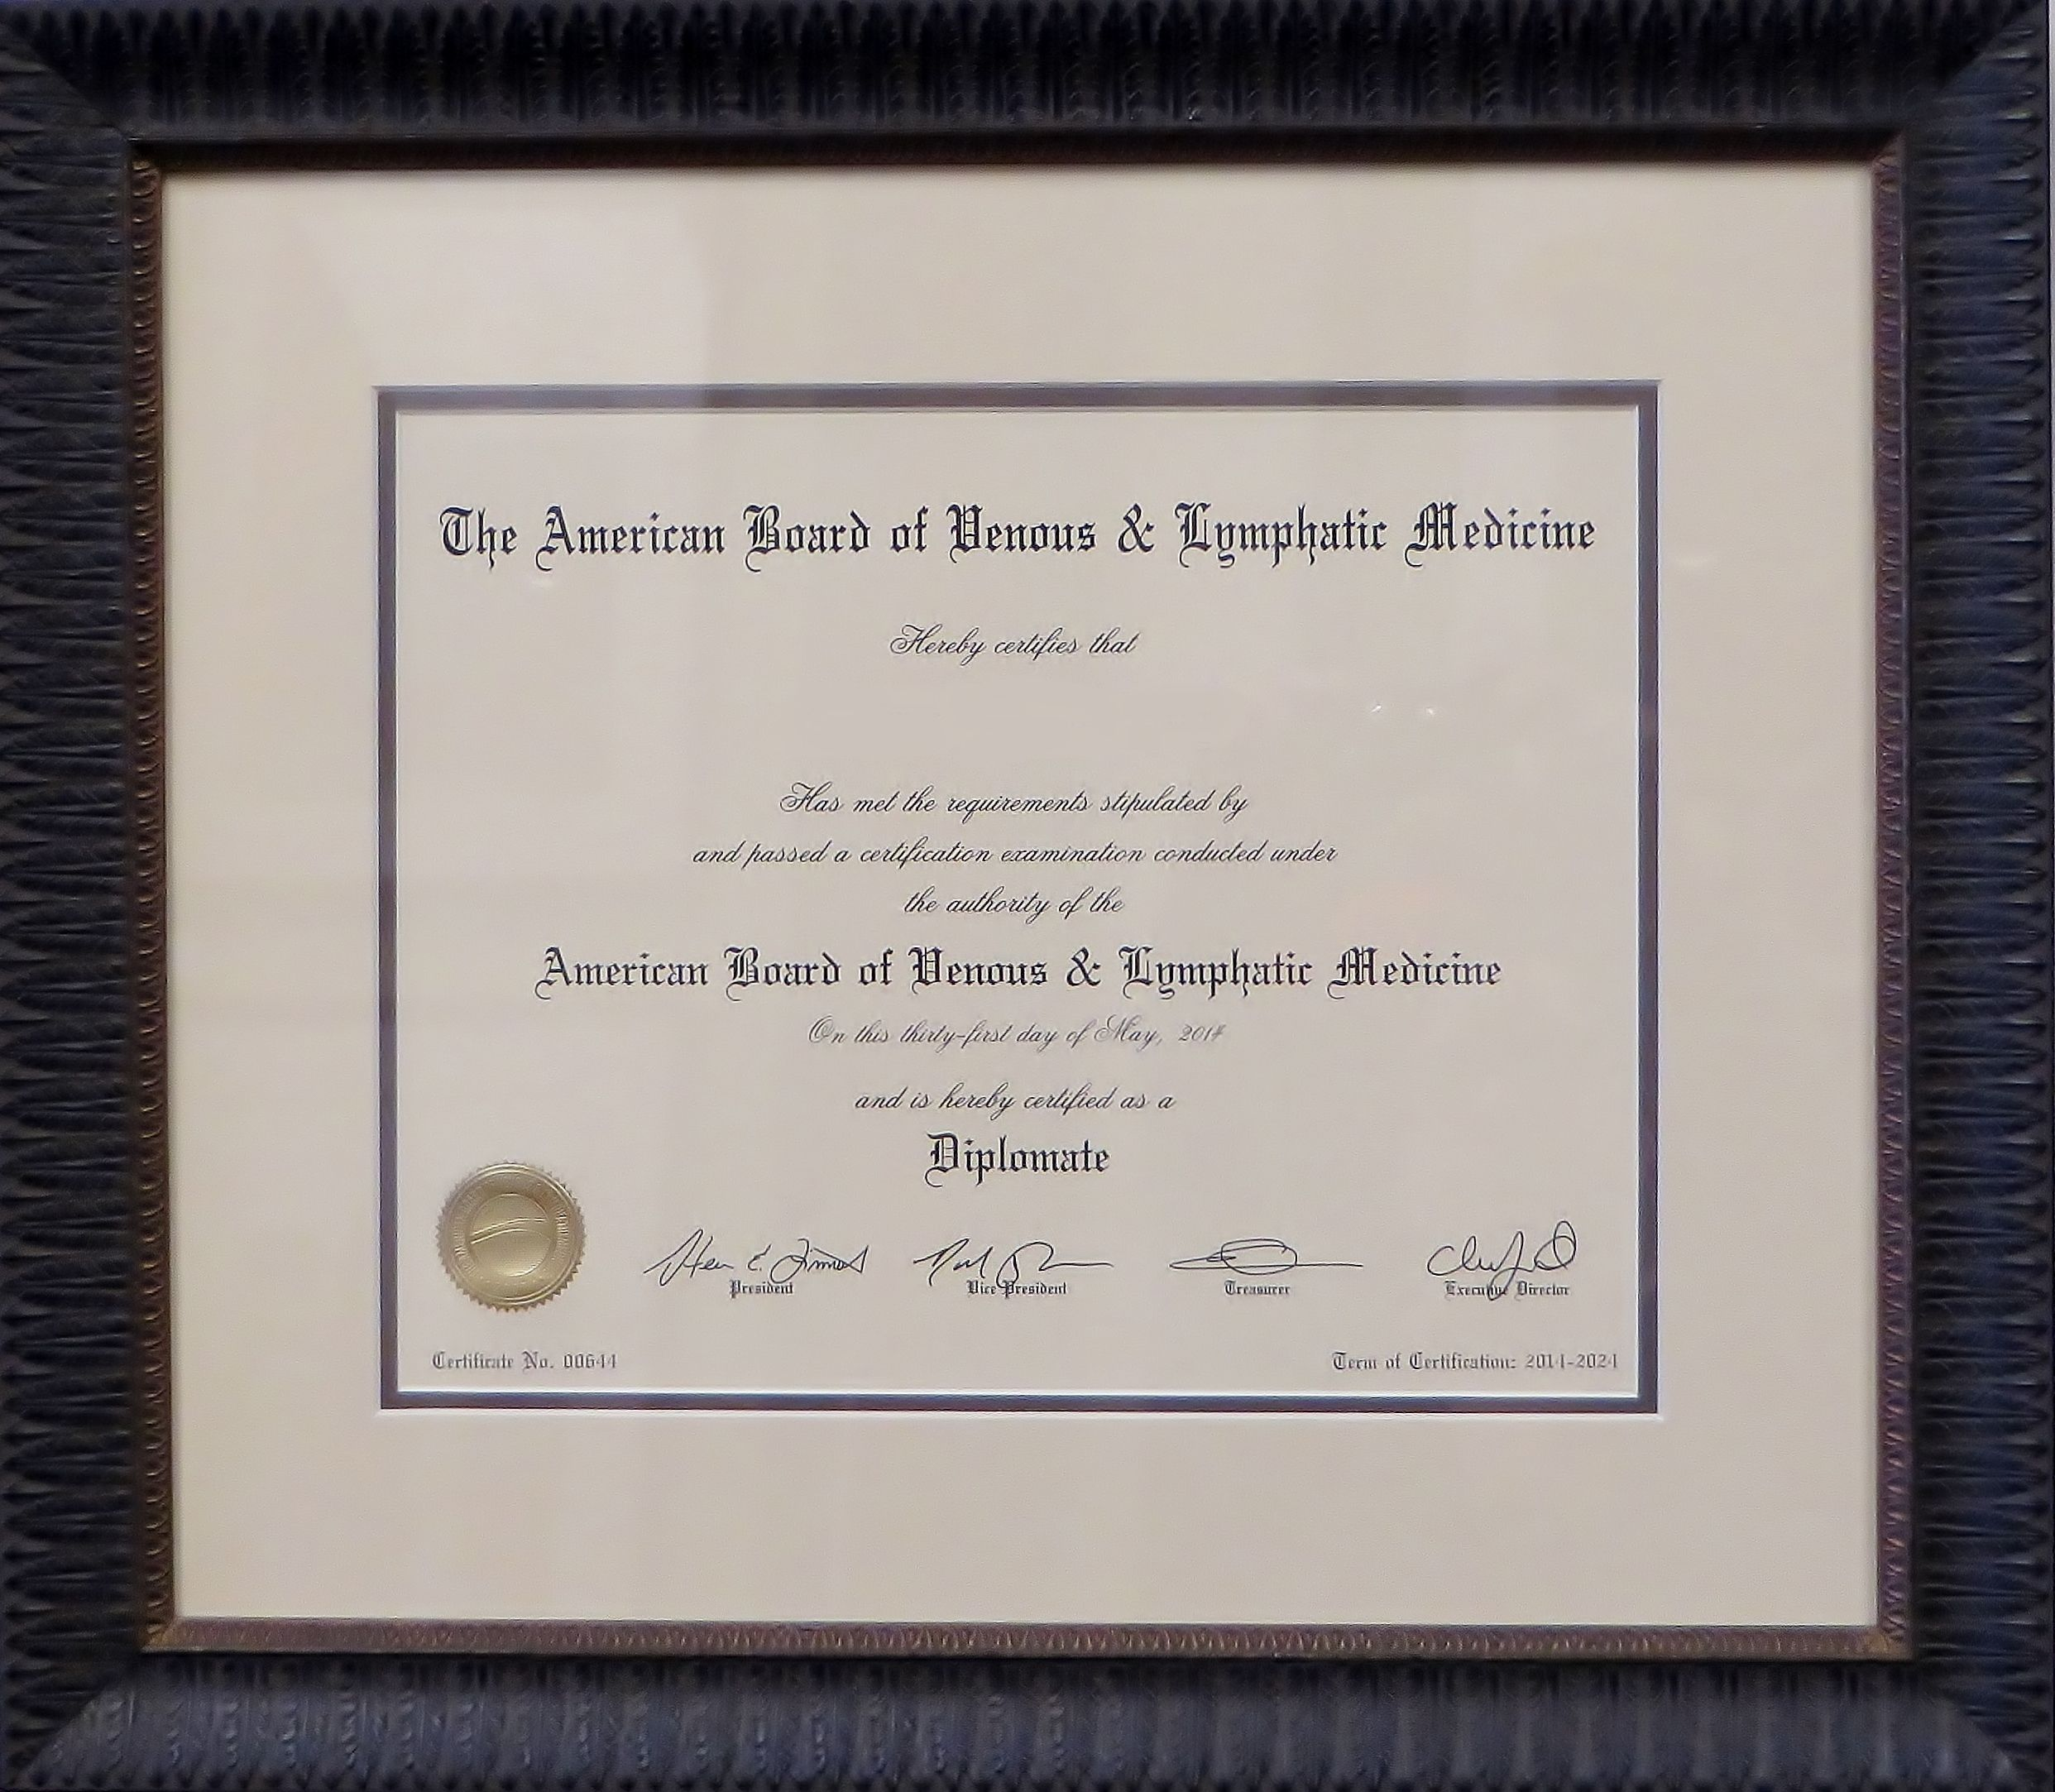 Certificate And Diploma Frames Don T Need To Be Boring Or Corporate Choose Something That Reflects Your Style And Accomplis Frame Custom Framing Diploma Frame